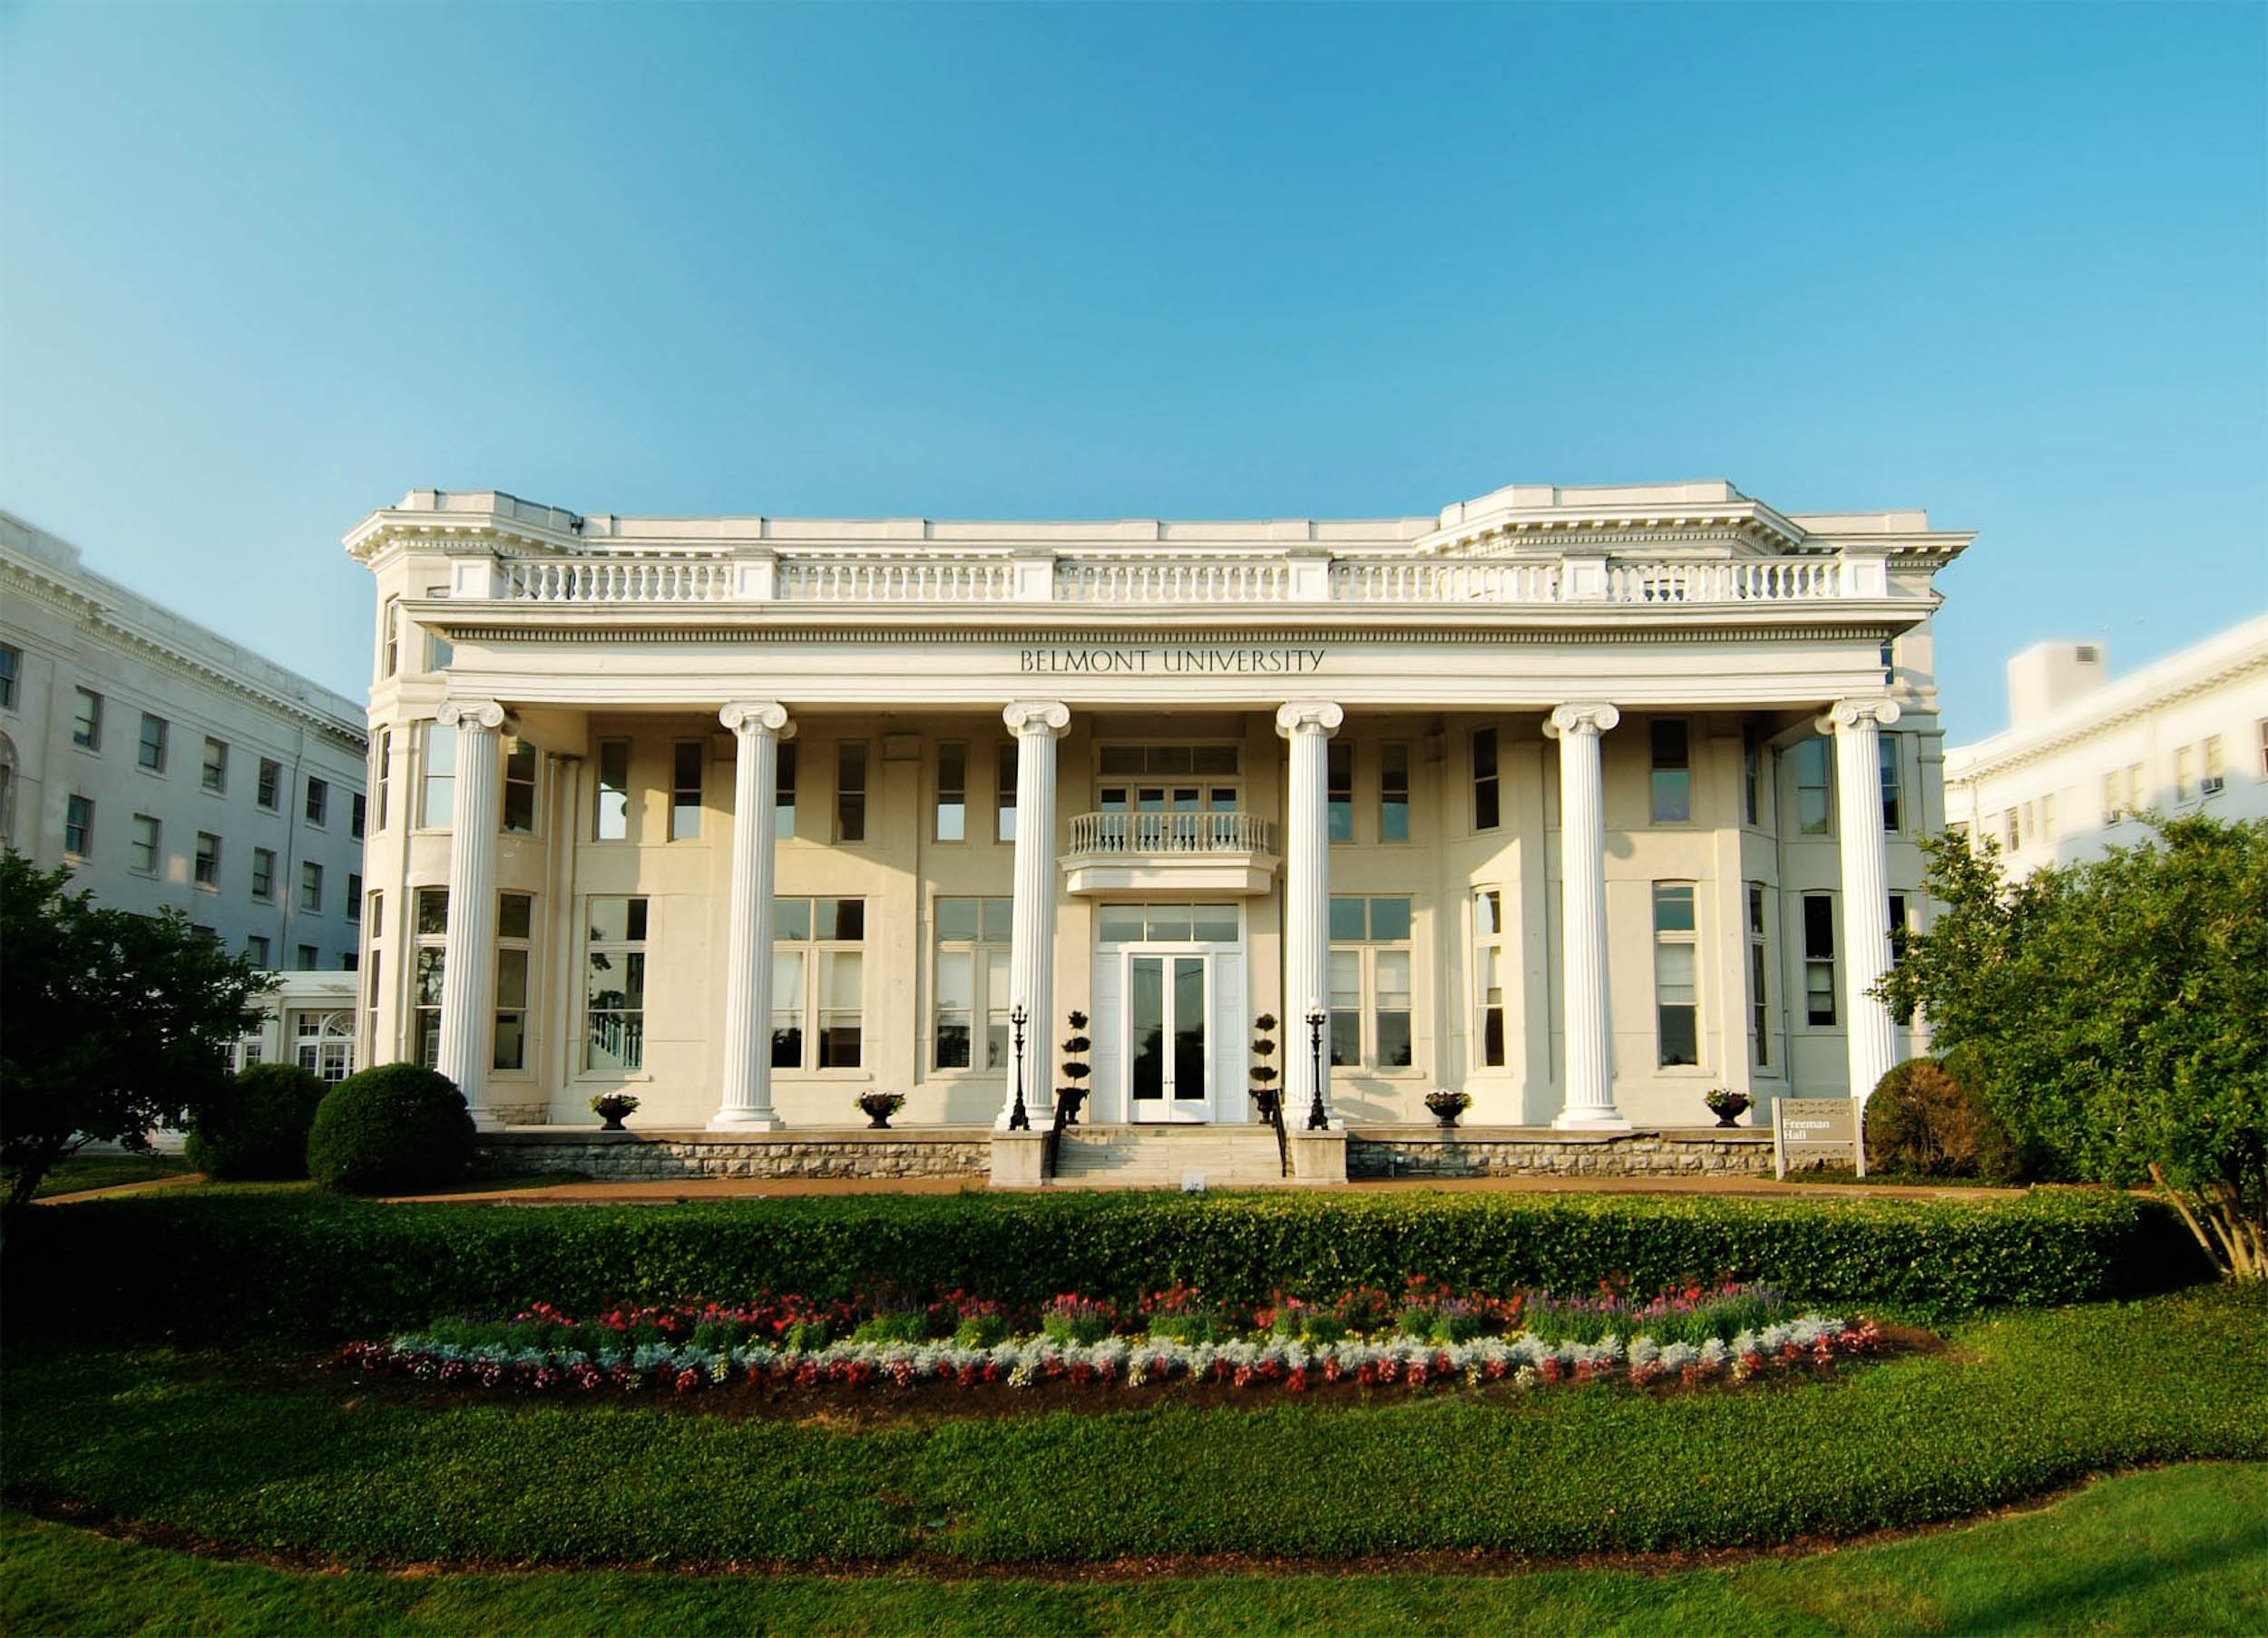 belmont-mansion-home-of-adelicia-acklen-iv-corps-hq-and-today-part-of-belmont-university-via-university-archives.jpg